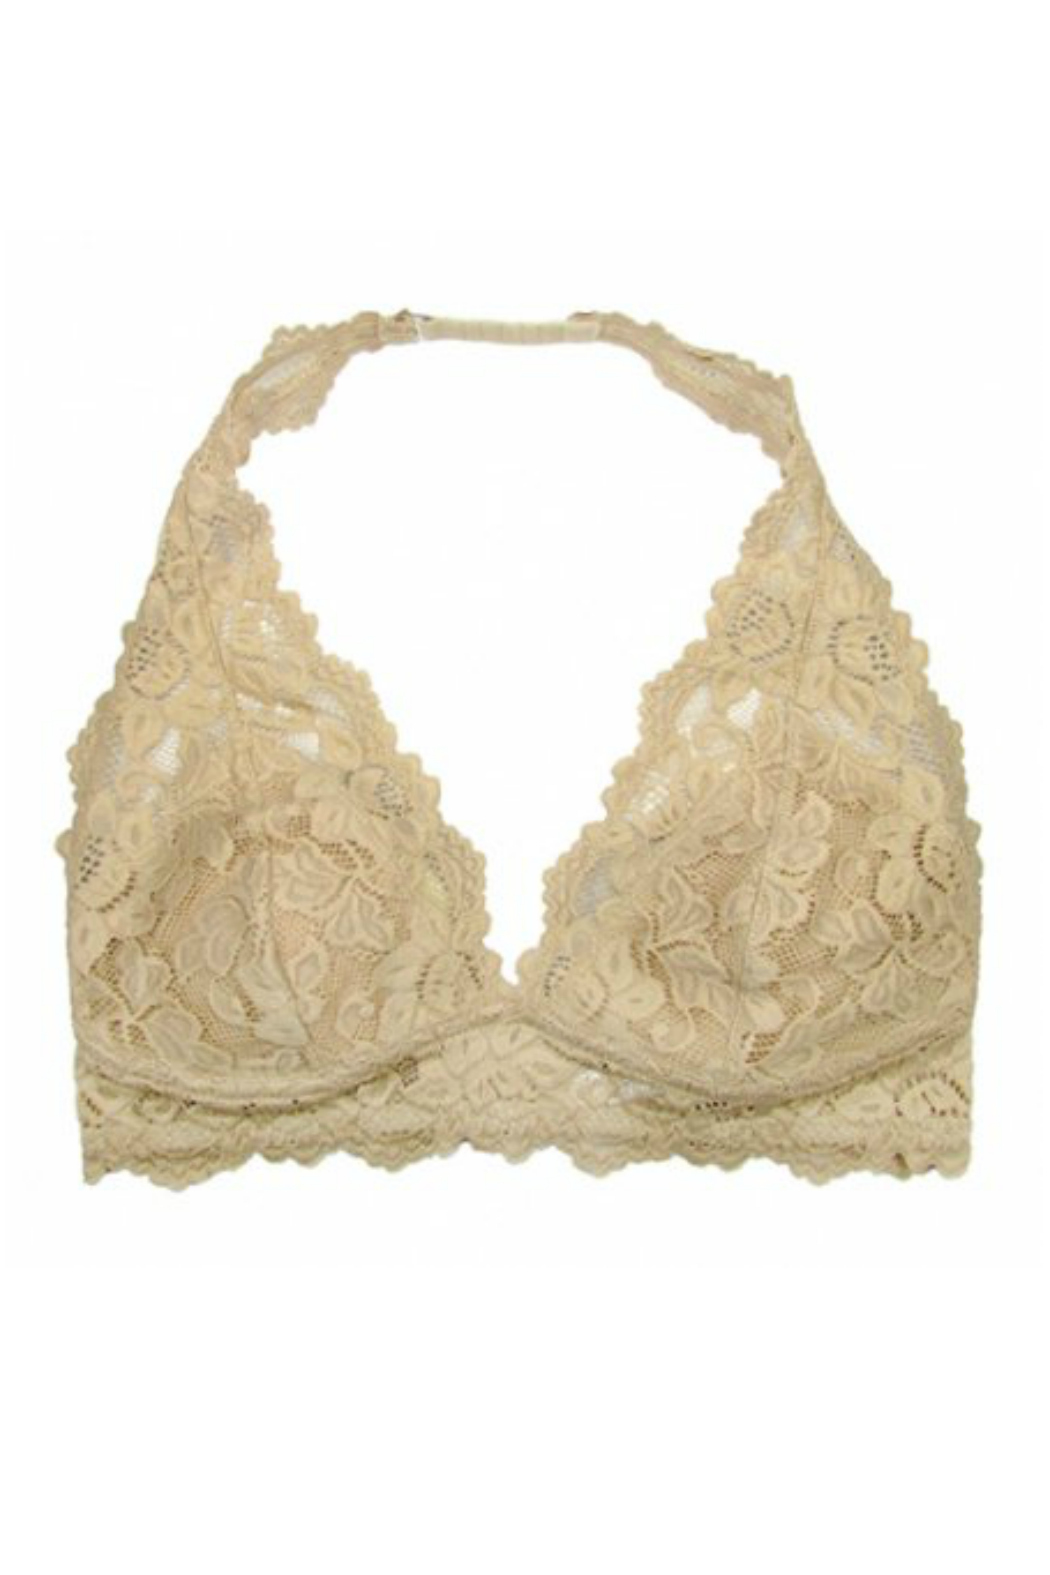 f5d1cc56f1b43 Coobie Lace Halter Bralette from New Jersey by Charlotte s Web ...